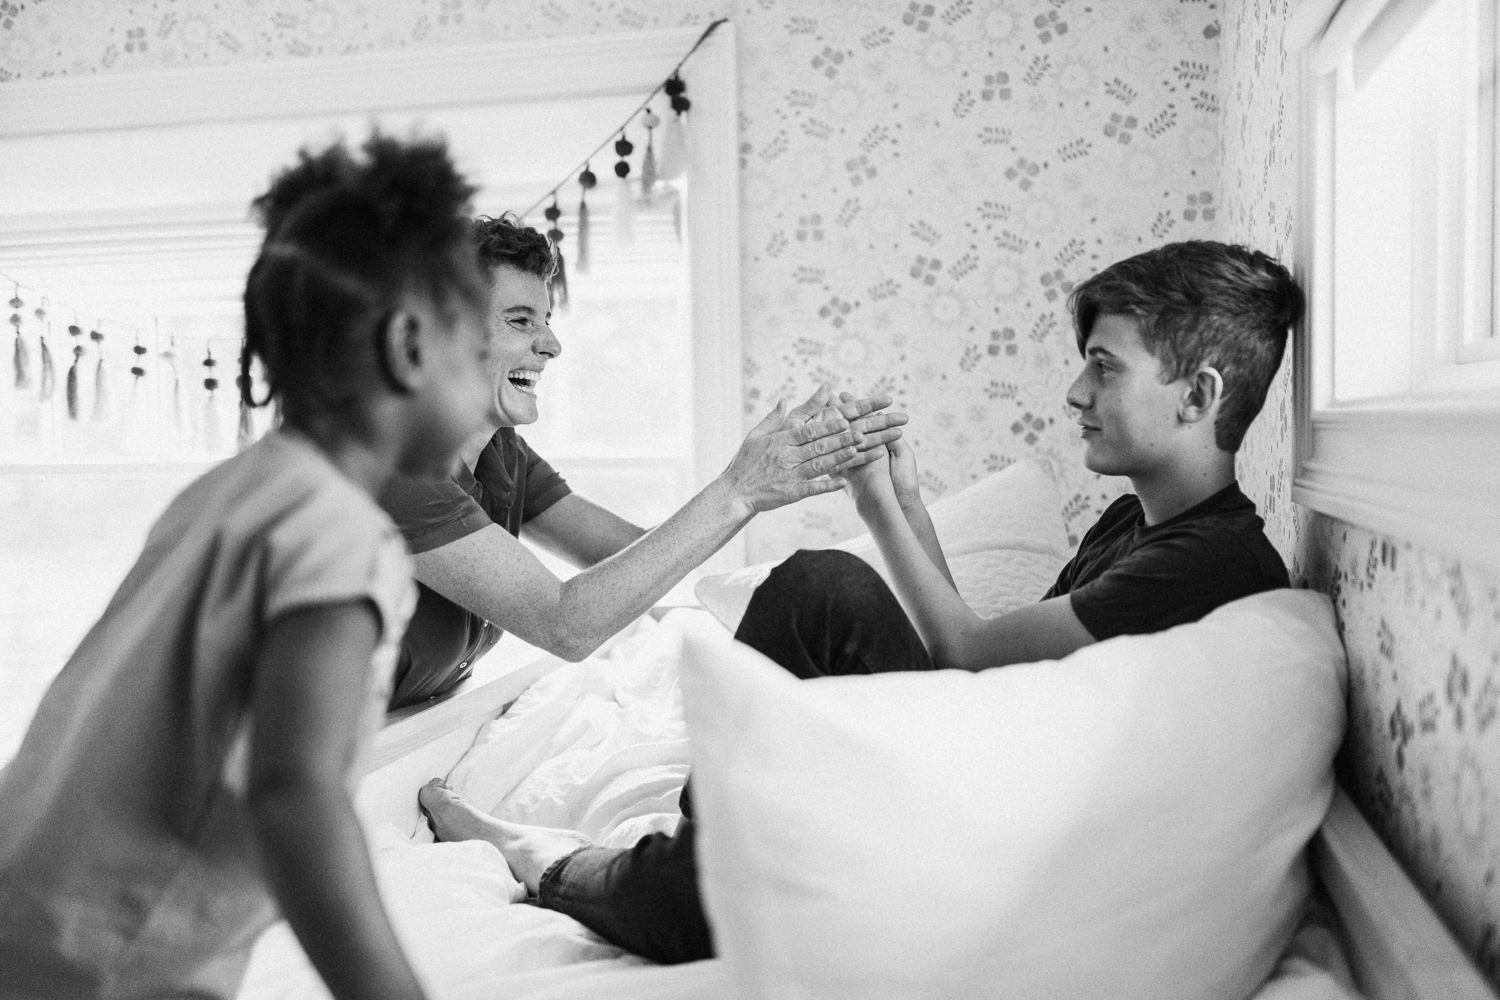 candid-black-and-white-photo-of-siblings-playing-on-bed-during-in-home-session-with-jen-fairchild-in-salt-lake-city-utah